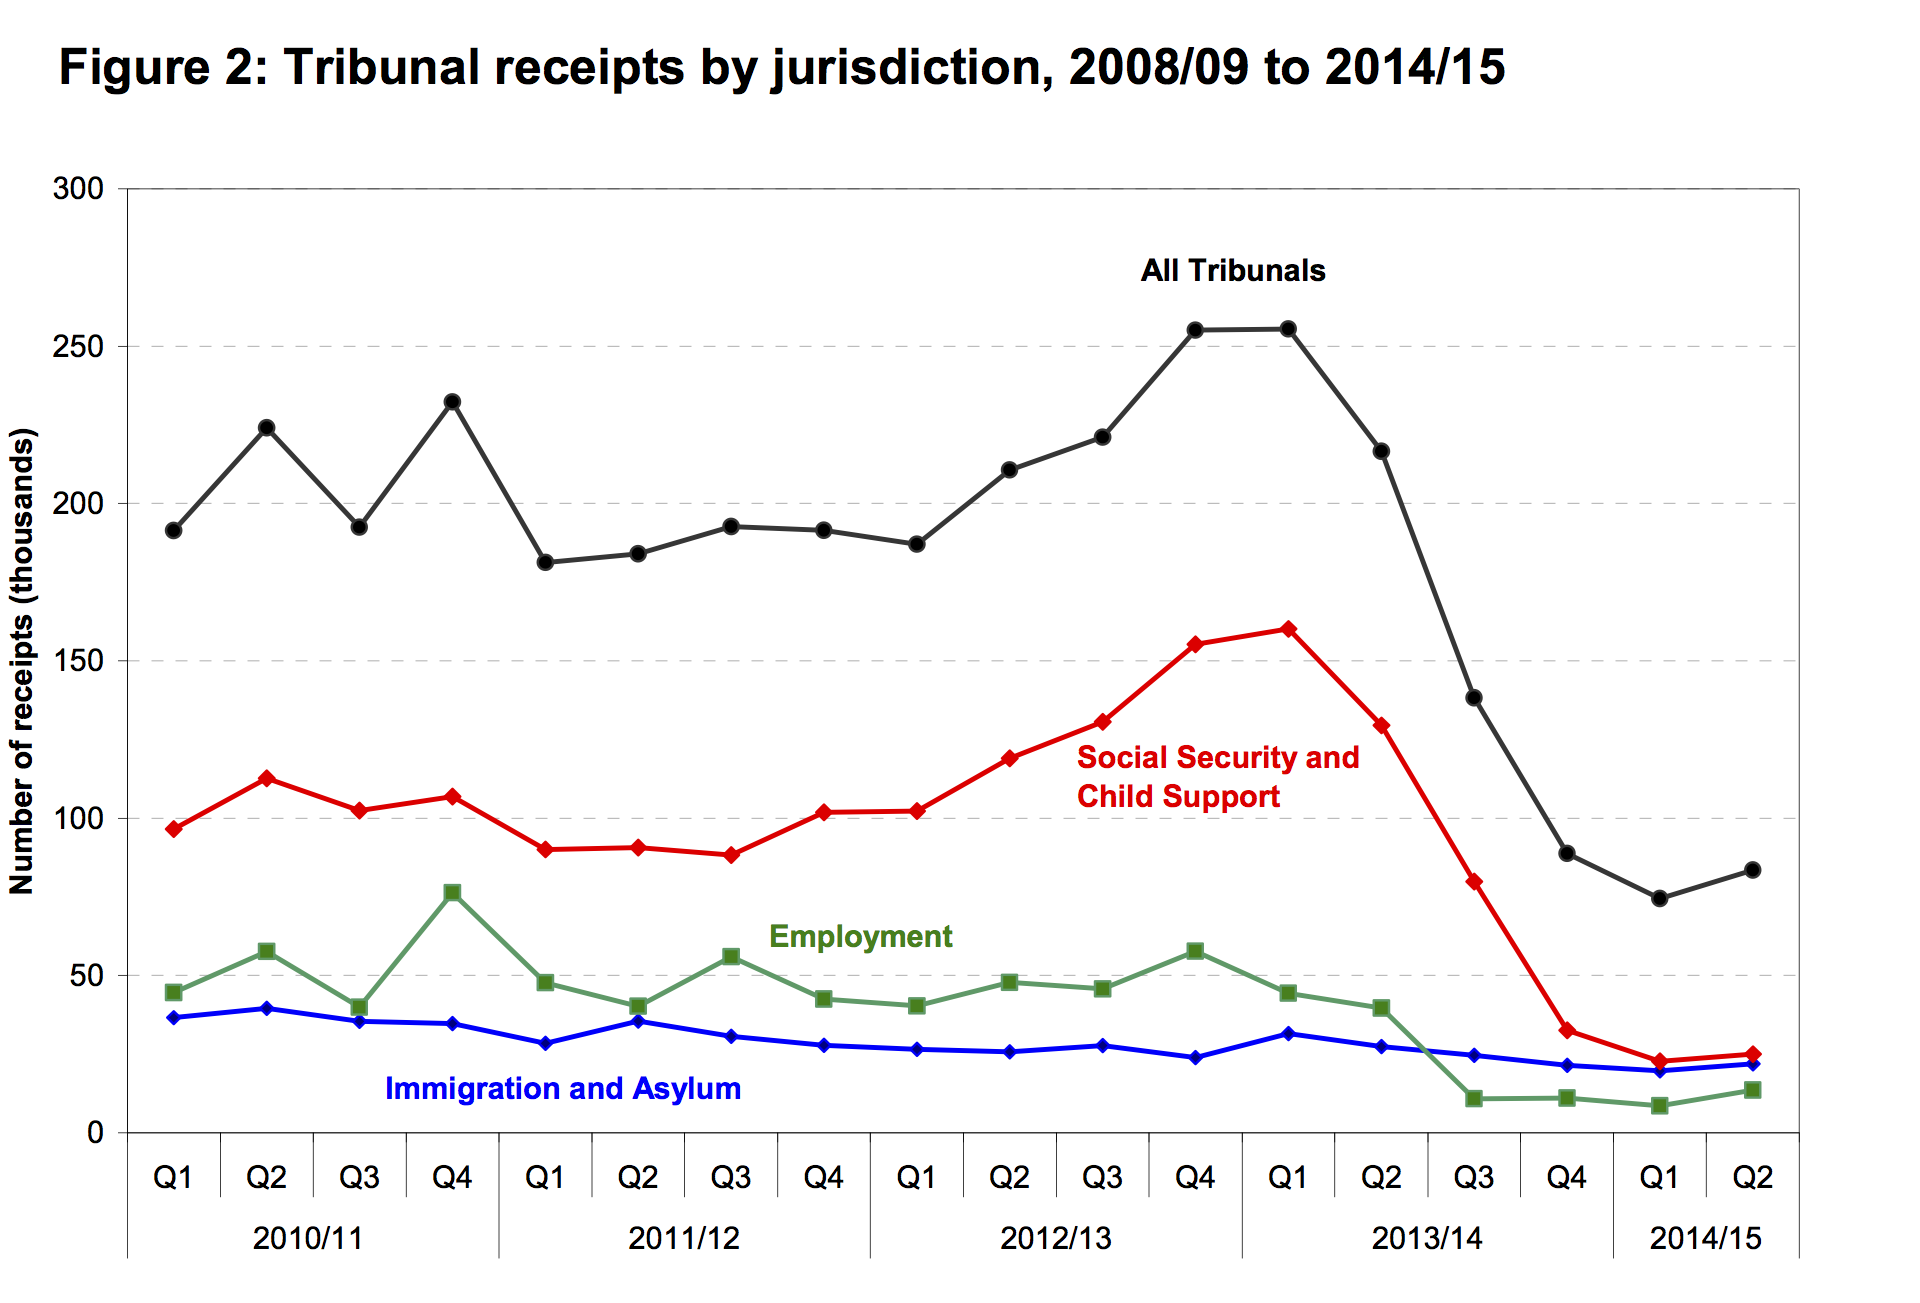 Tribunal Receipts by jurisdiction 2009-14/15